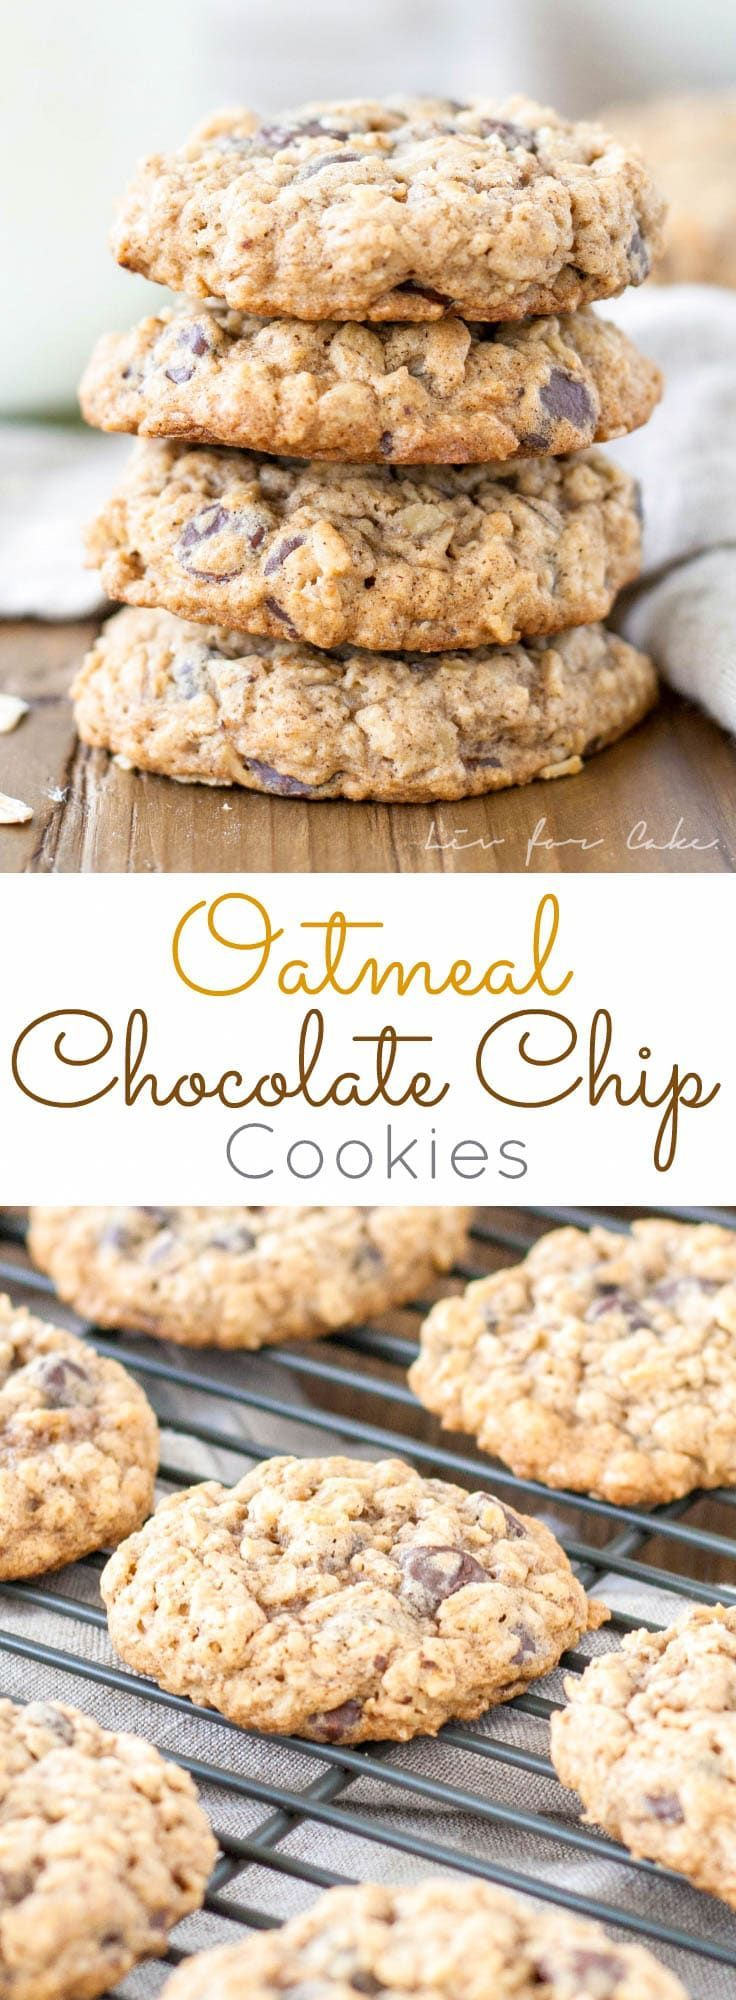 The PERFECT soft and chewy oatmeal chocolate chip cookies. | livforcake.com